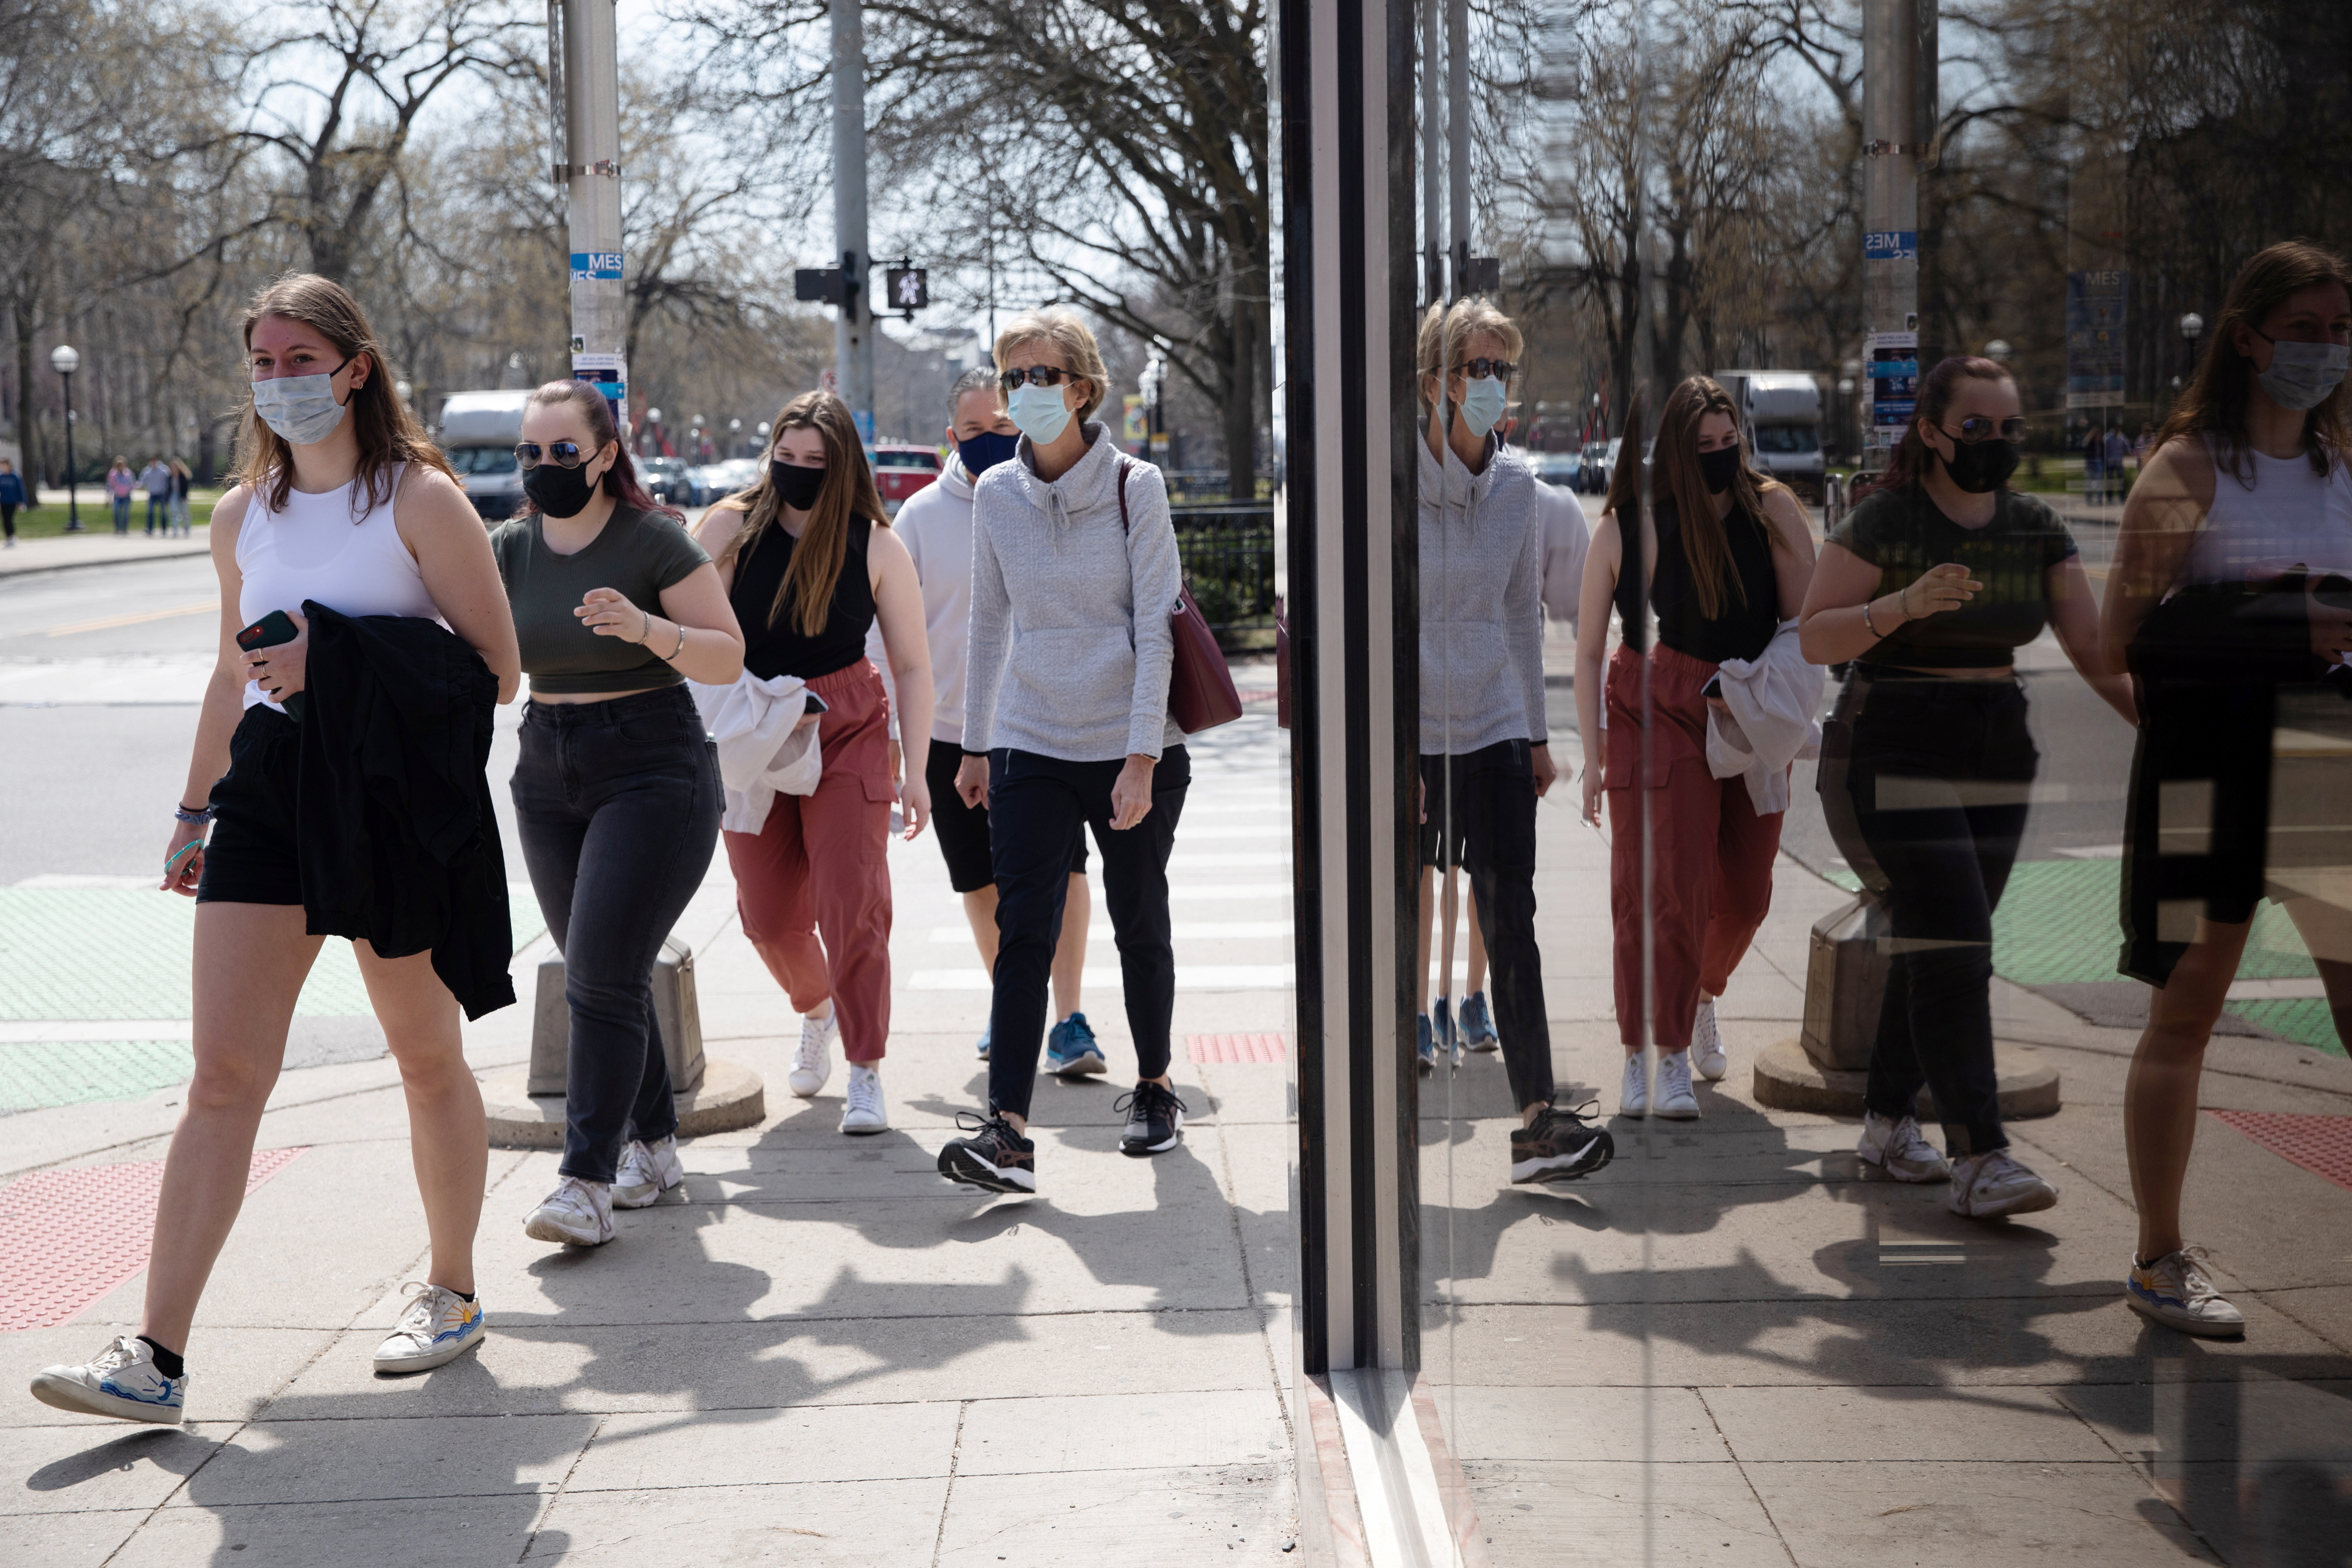 A group of people walk wearing protective masks head to a restaurant as coronavirus disease (COVID-19) restrictions are eased in Ann Arbor, Michigan, U.S., April 4, 2021.  REUTERS/Emily Elconin - RC29PM9DS0U1